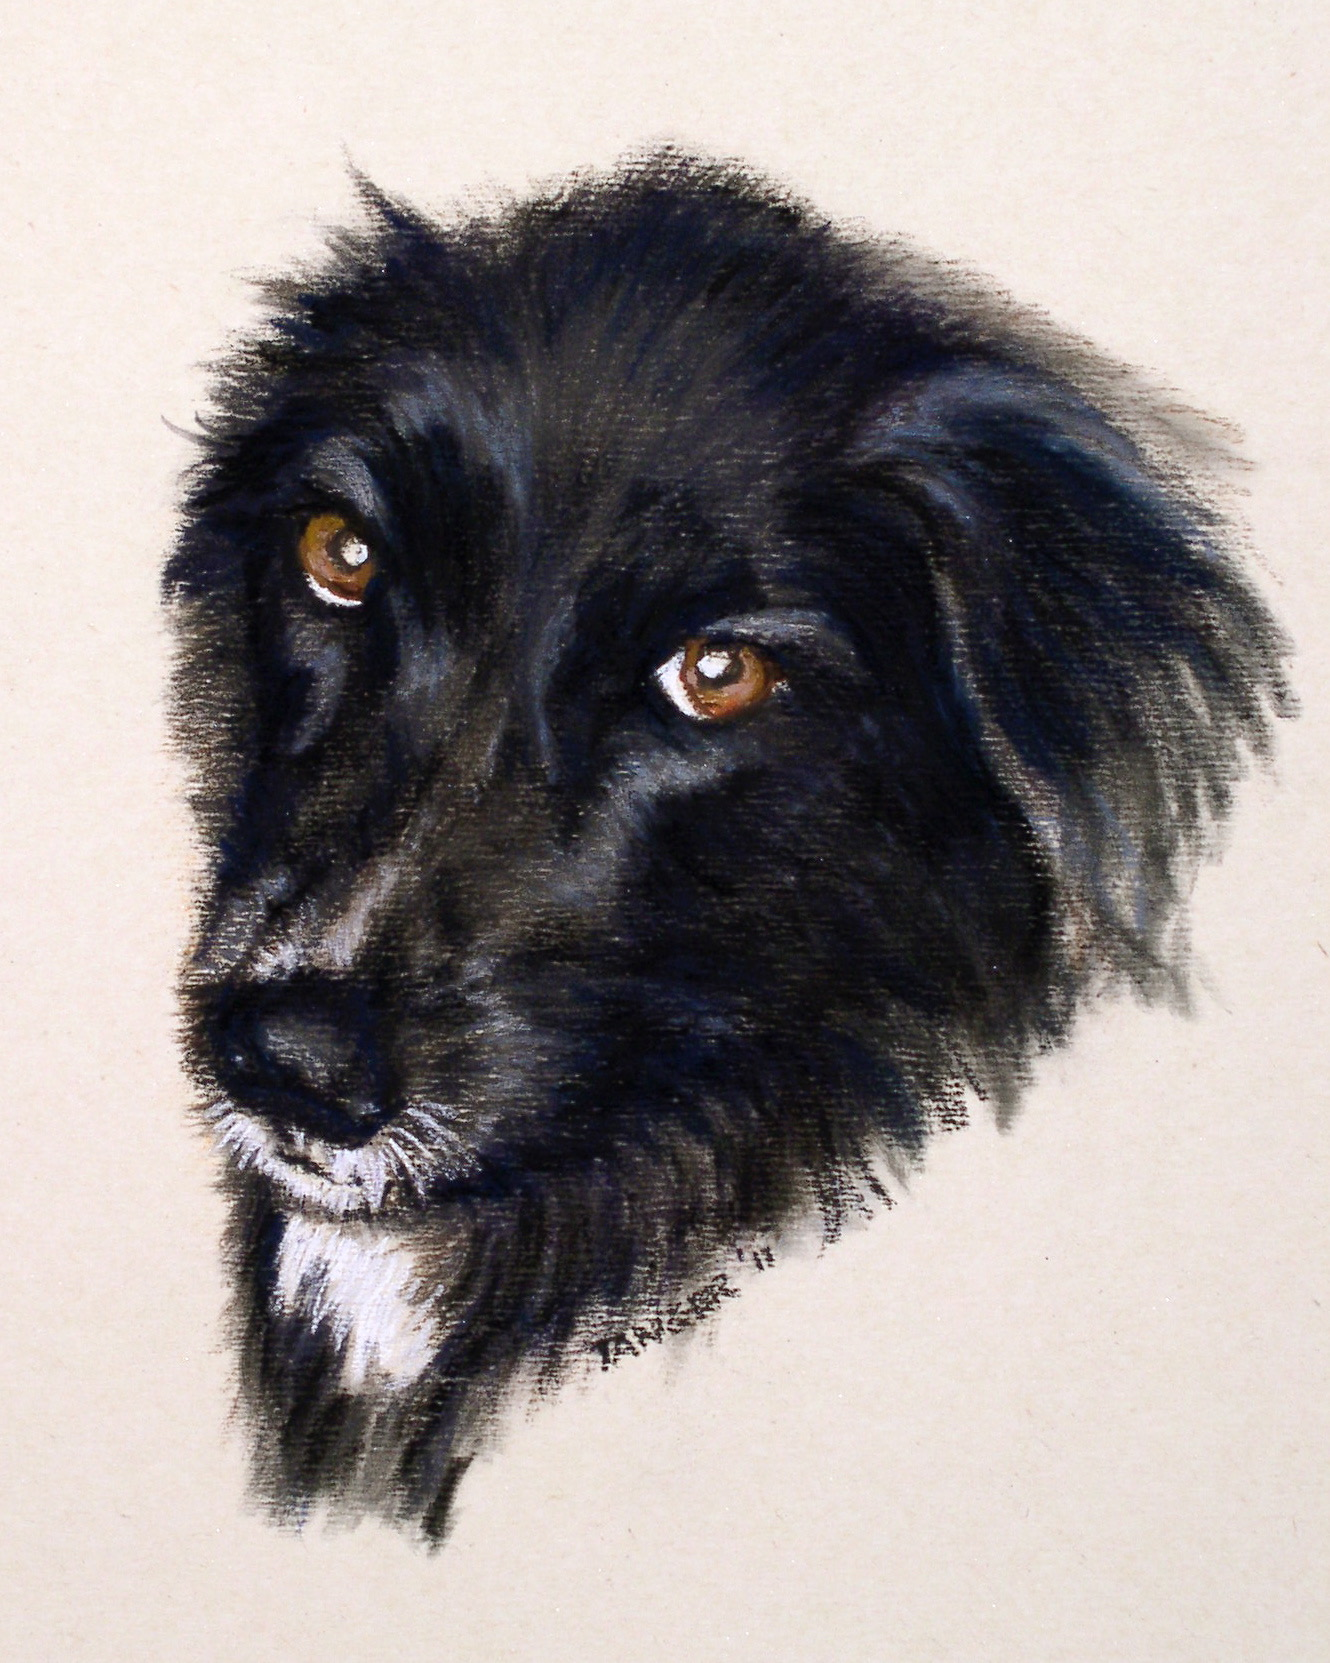 sweet face of a black dog with white chin in pastel